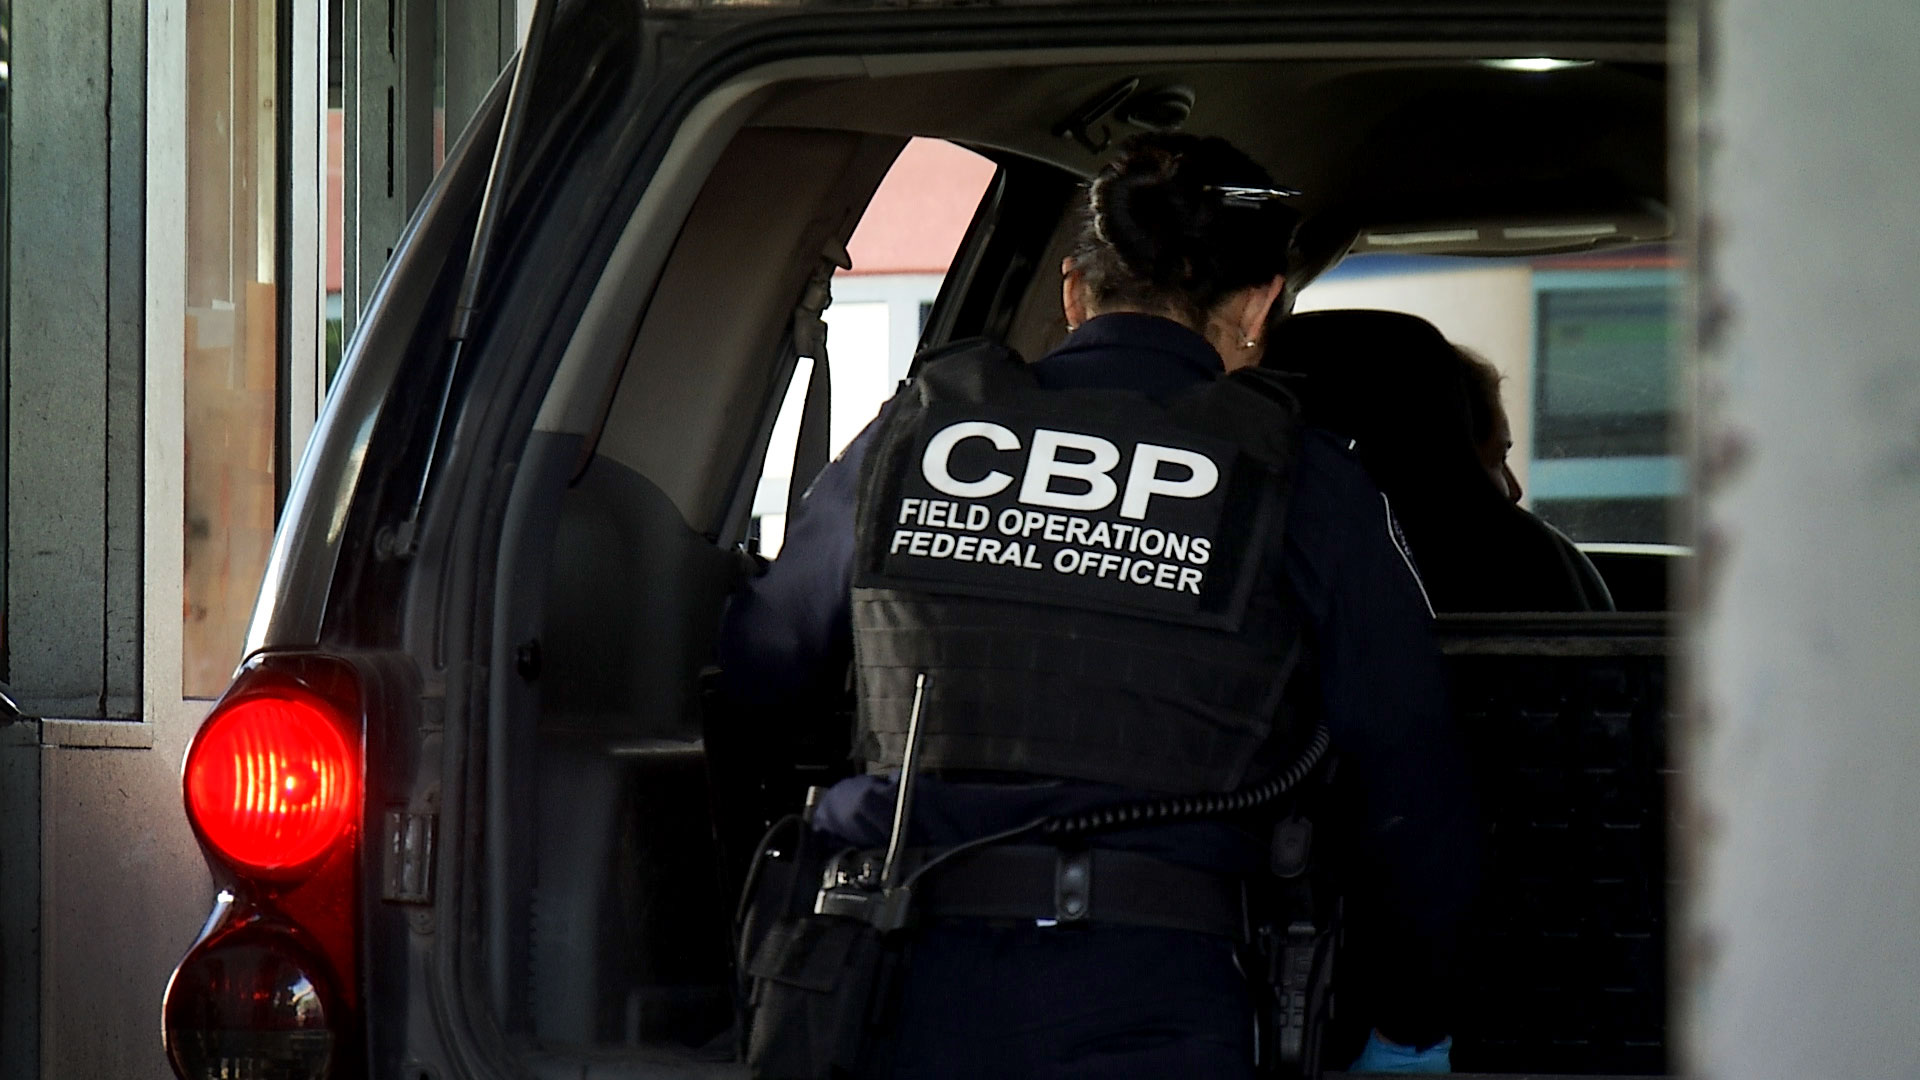 A Customs and Border Protection officer inspects a vehicle at the Dennis DeConcini Port of Entry in May 2019.